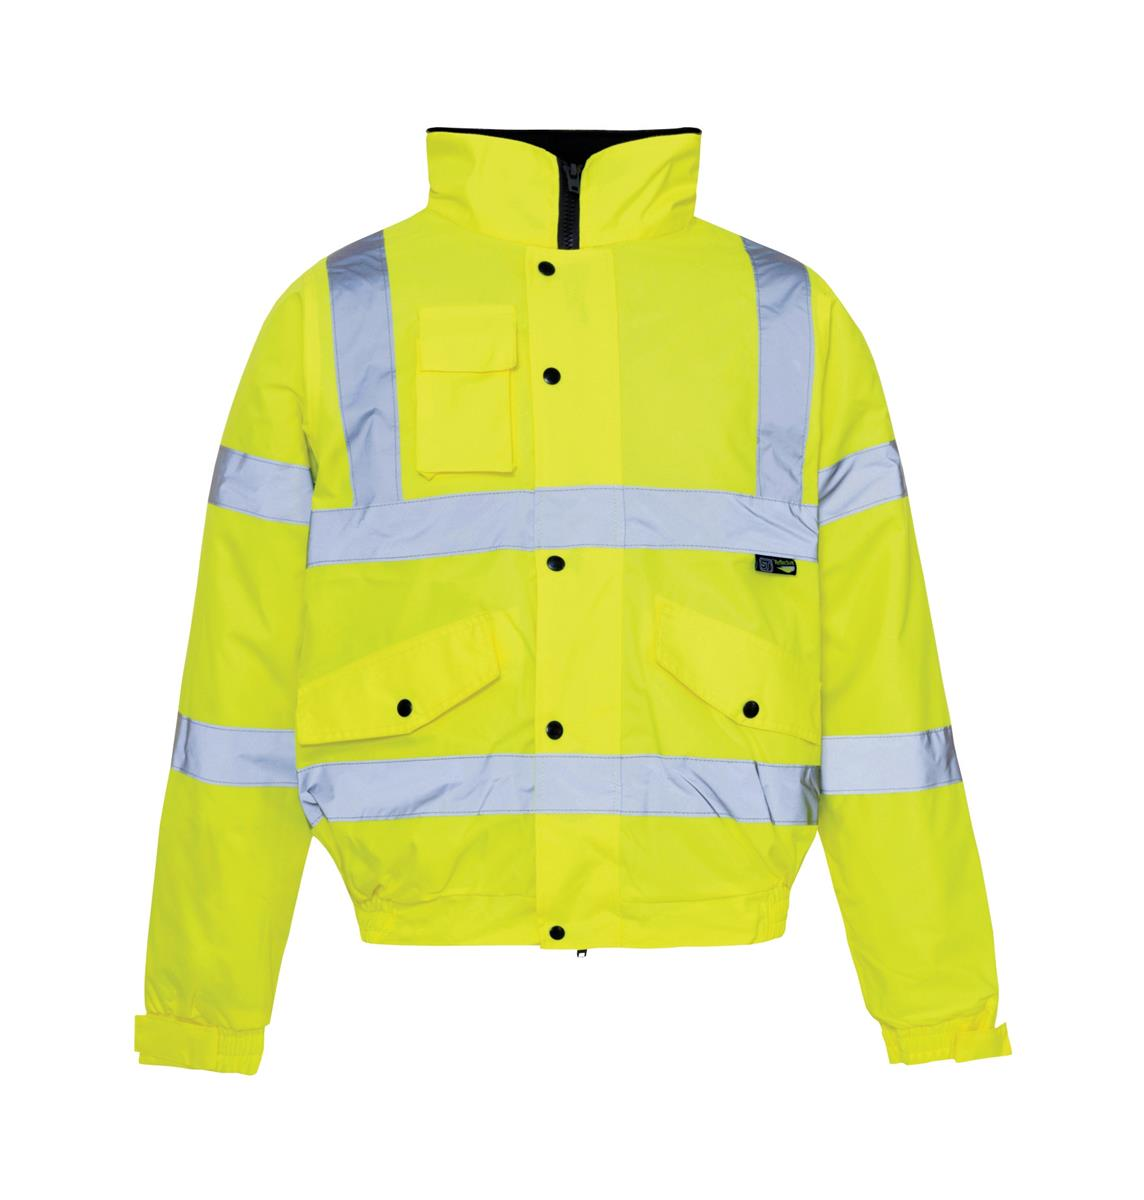 ST High Vis Standard Jkt Storm Bomber Warm Padded Lining XXXLarge Yellow Ref 36846 *Approx 3 Day L/Time*